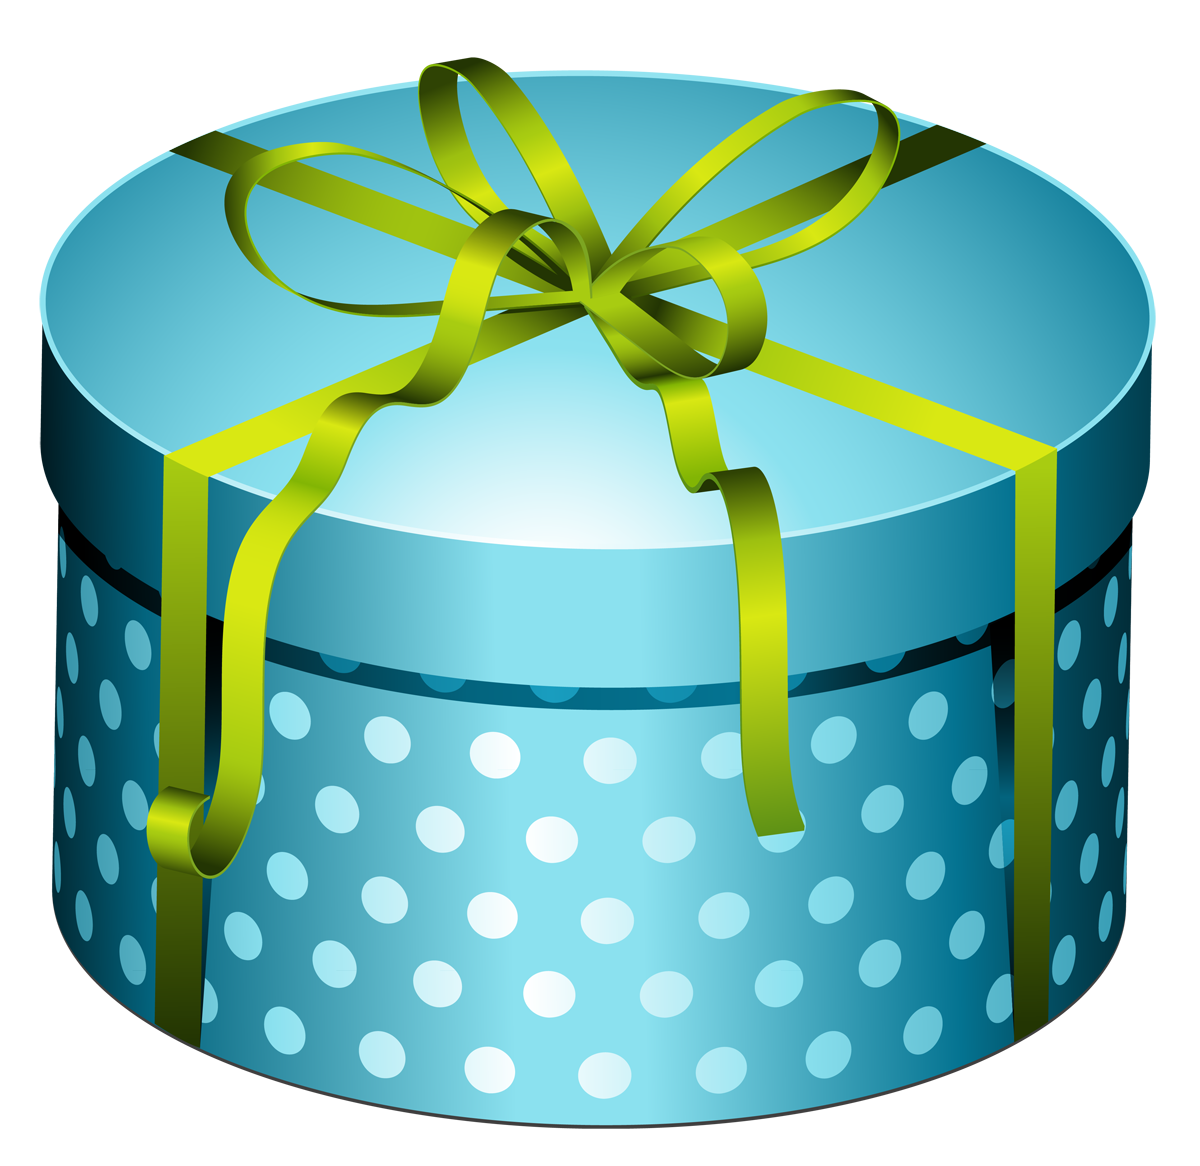 Blue Round Present Box with Bow PNG Clipart.